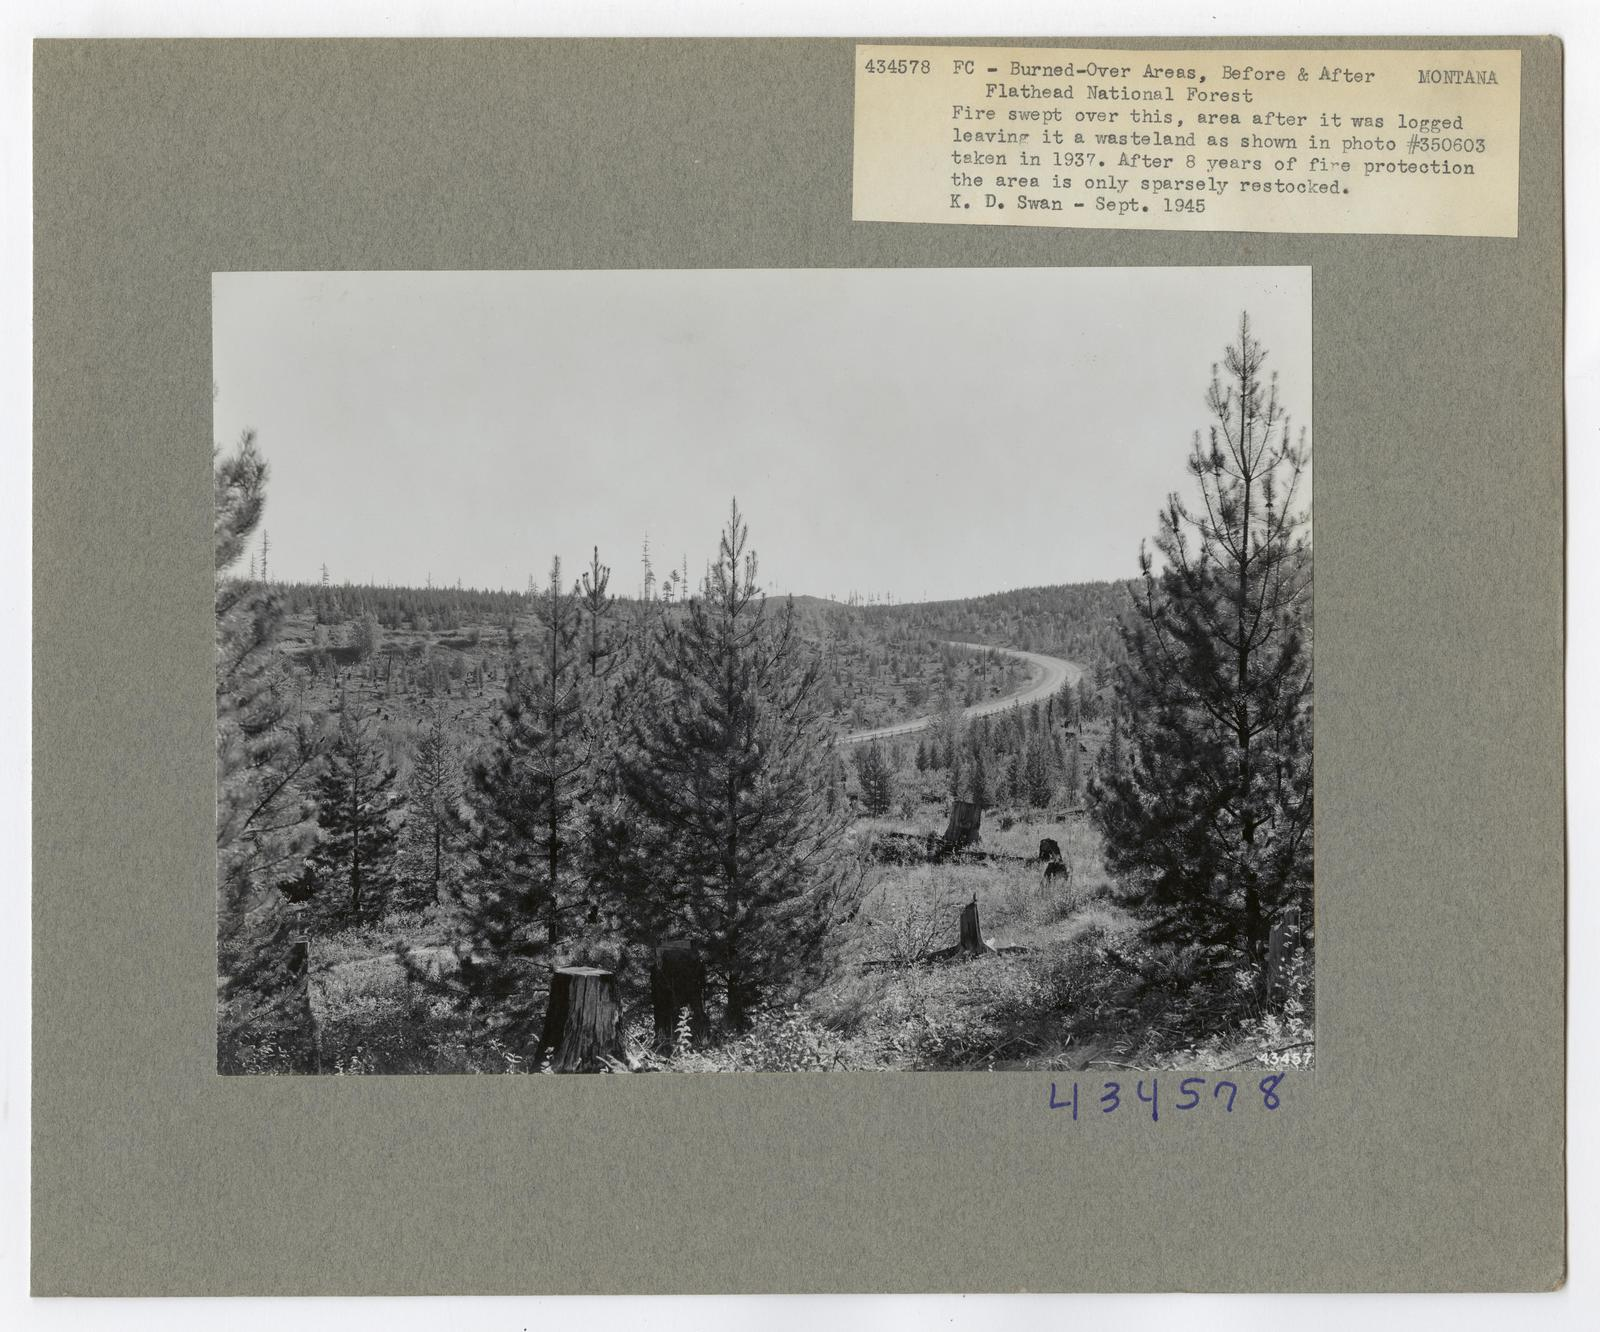 Burned -Over Areas - Camera Point - Montana